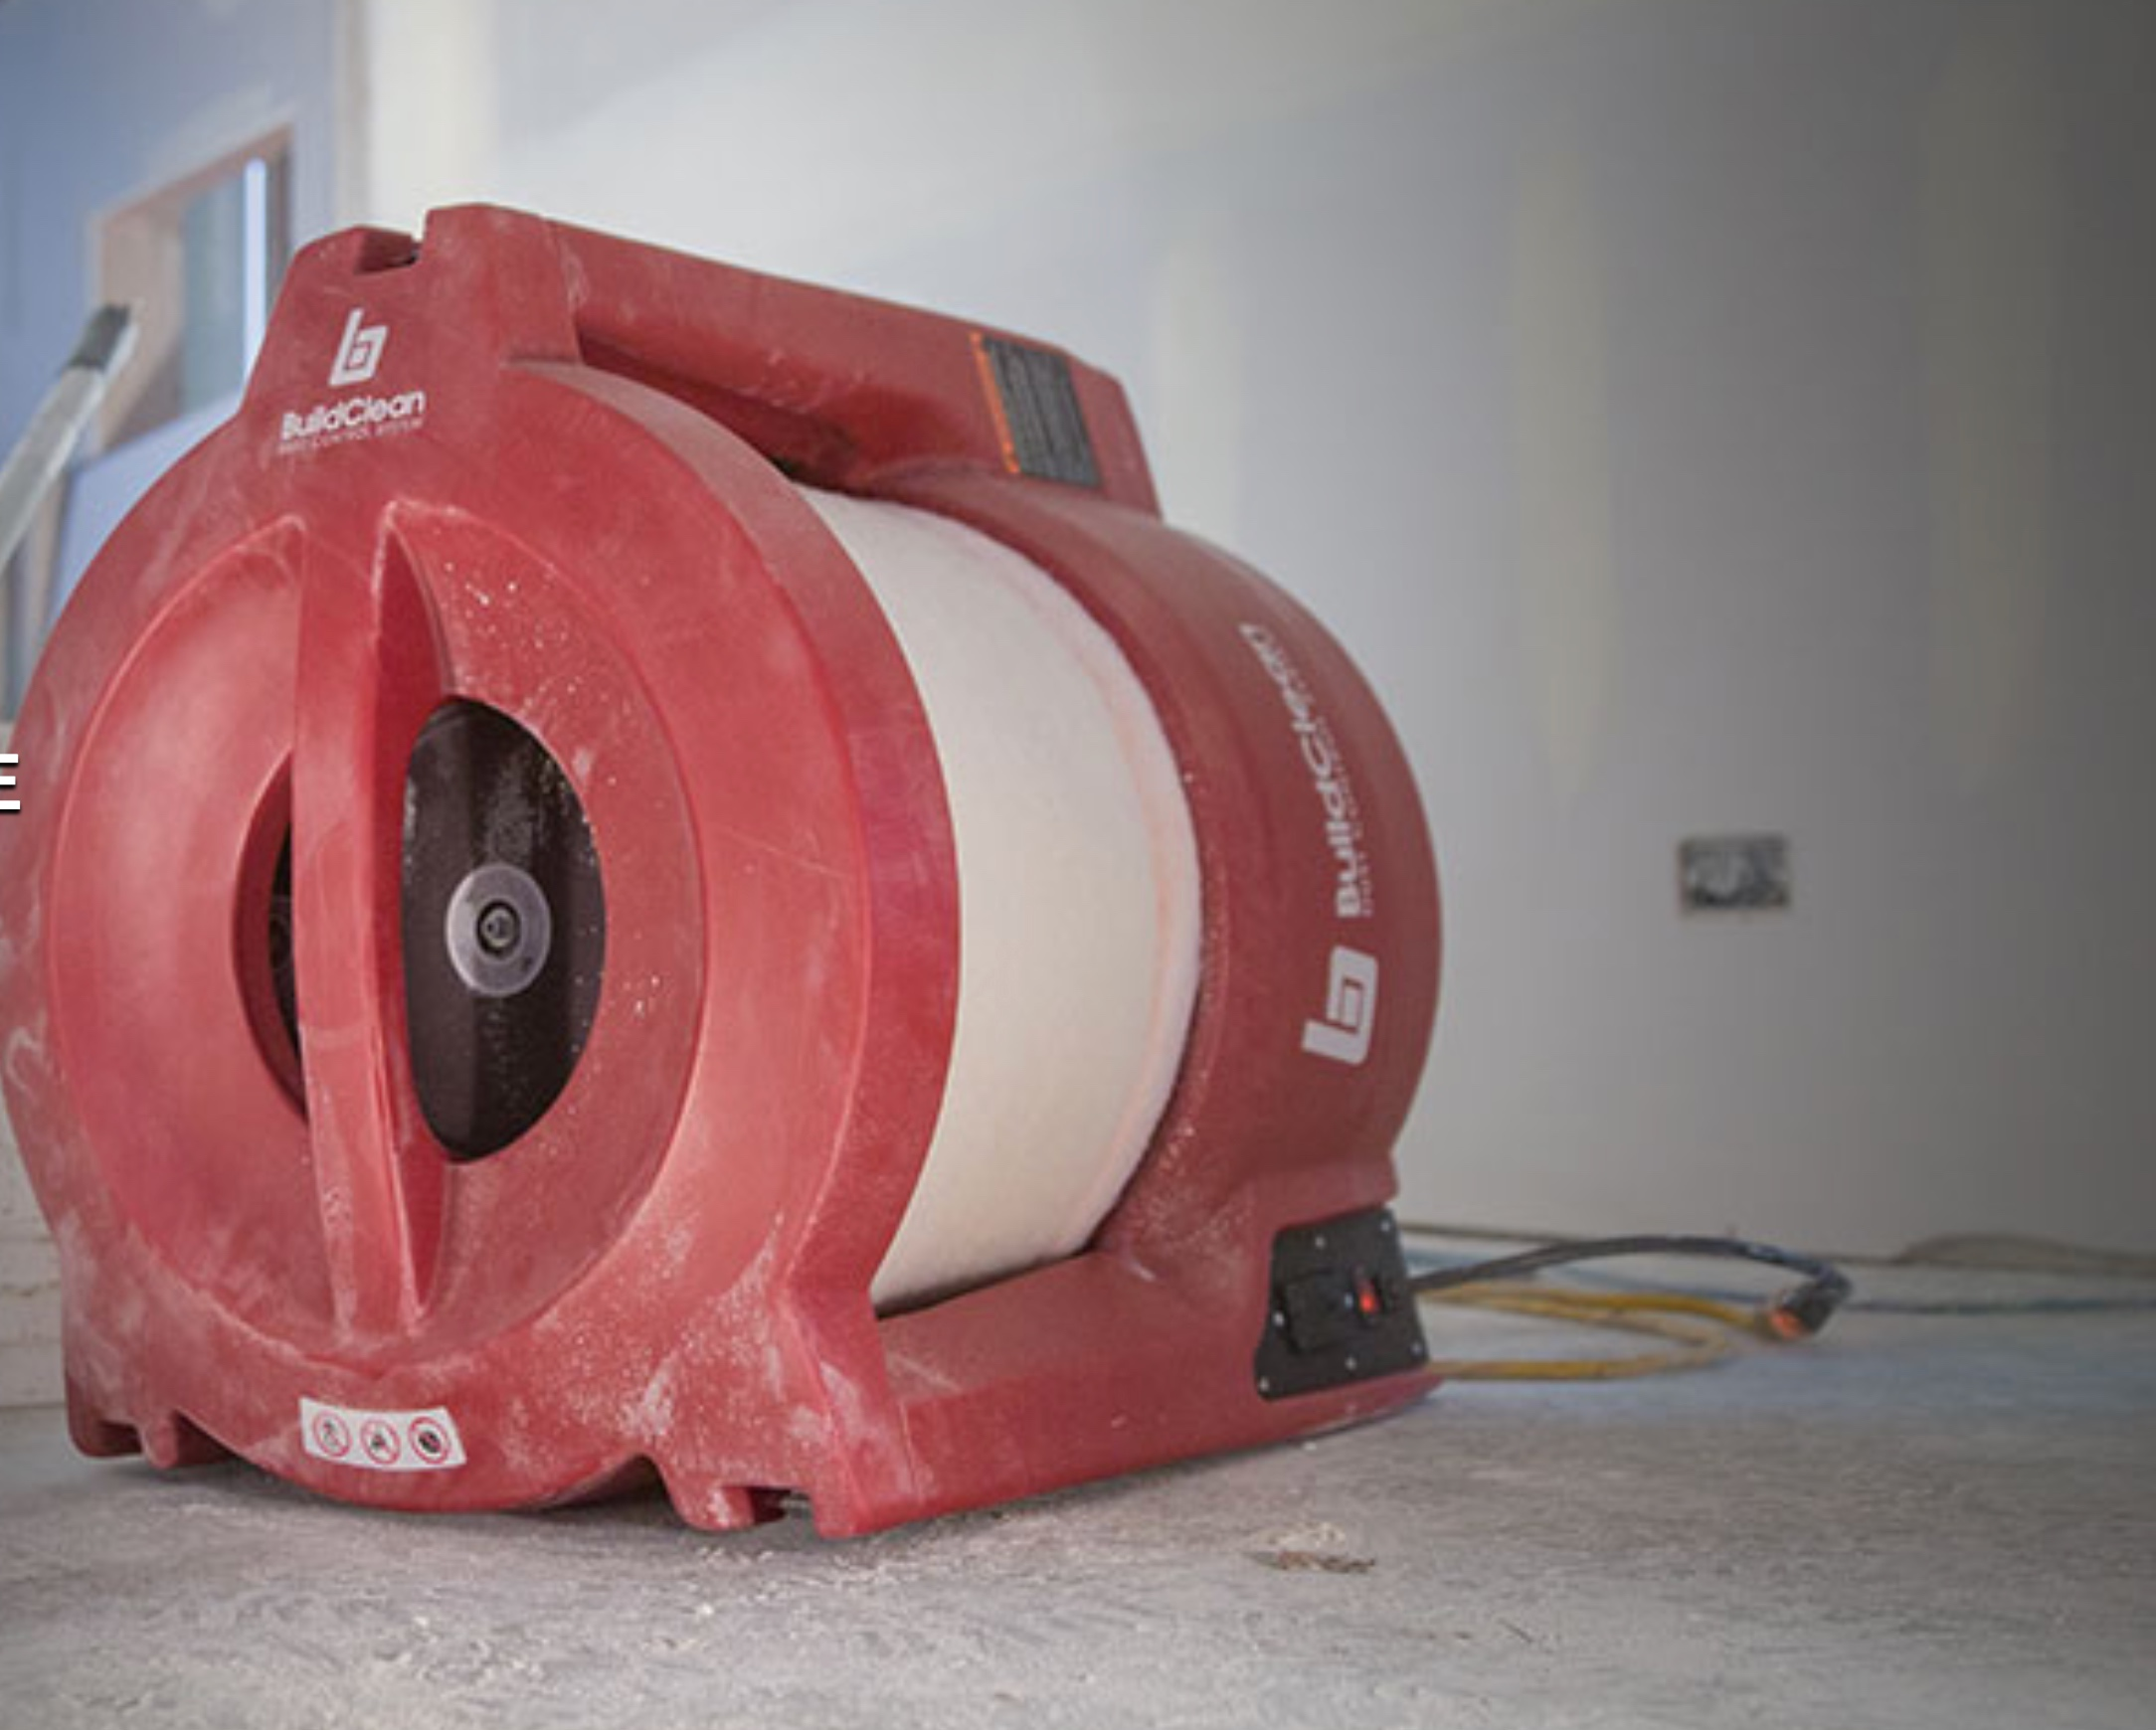 Clean Air - Job sites are dusty. We eliminate 90% of airborne dust through our Build Clean HEPA Air Scrubbers. Our machines use a fan to draw in dirty air, passes it through a two stage filtration system, captures the dust, and returns the clean air into the room. We care about job site air conditions for both our crew and our clients.